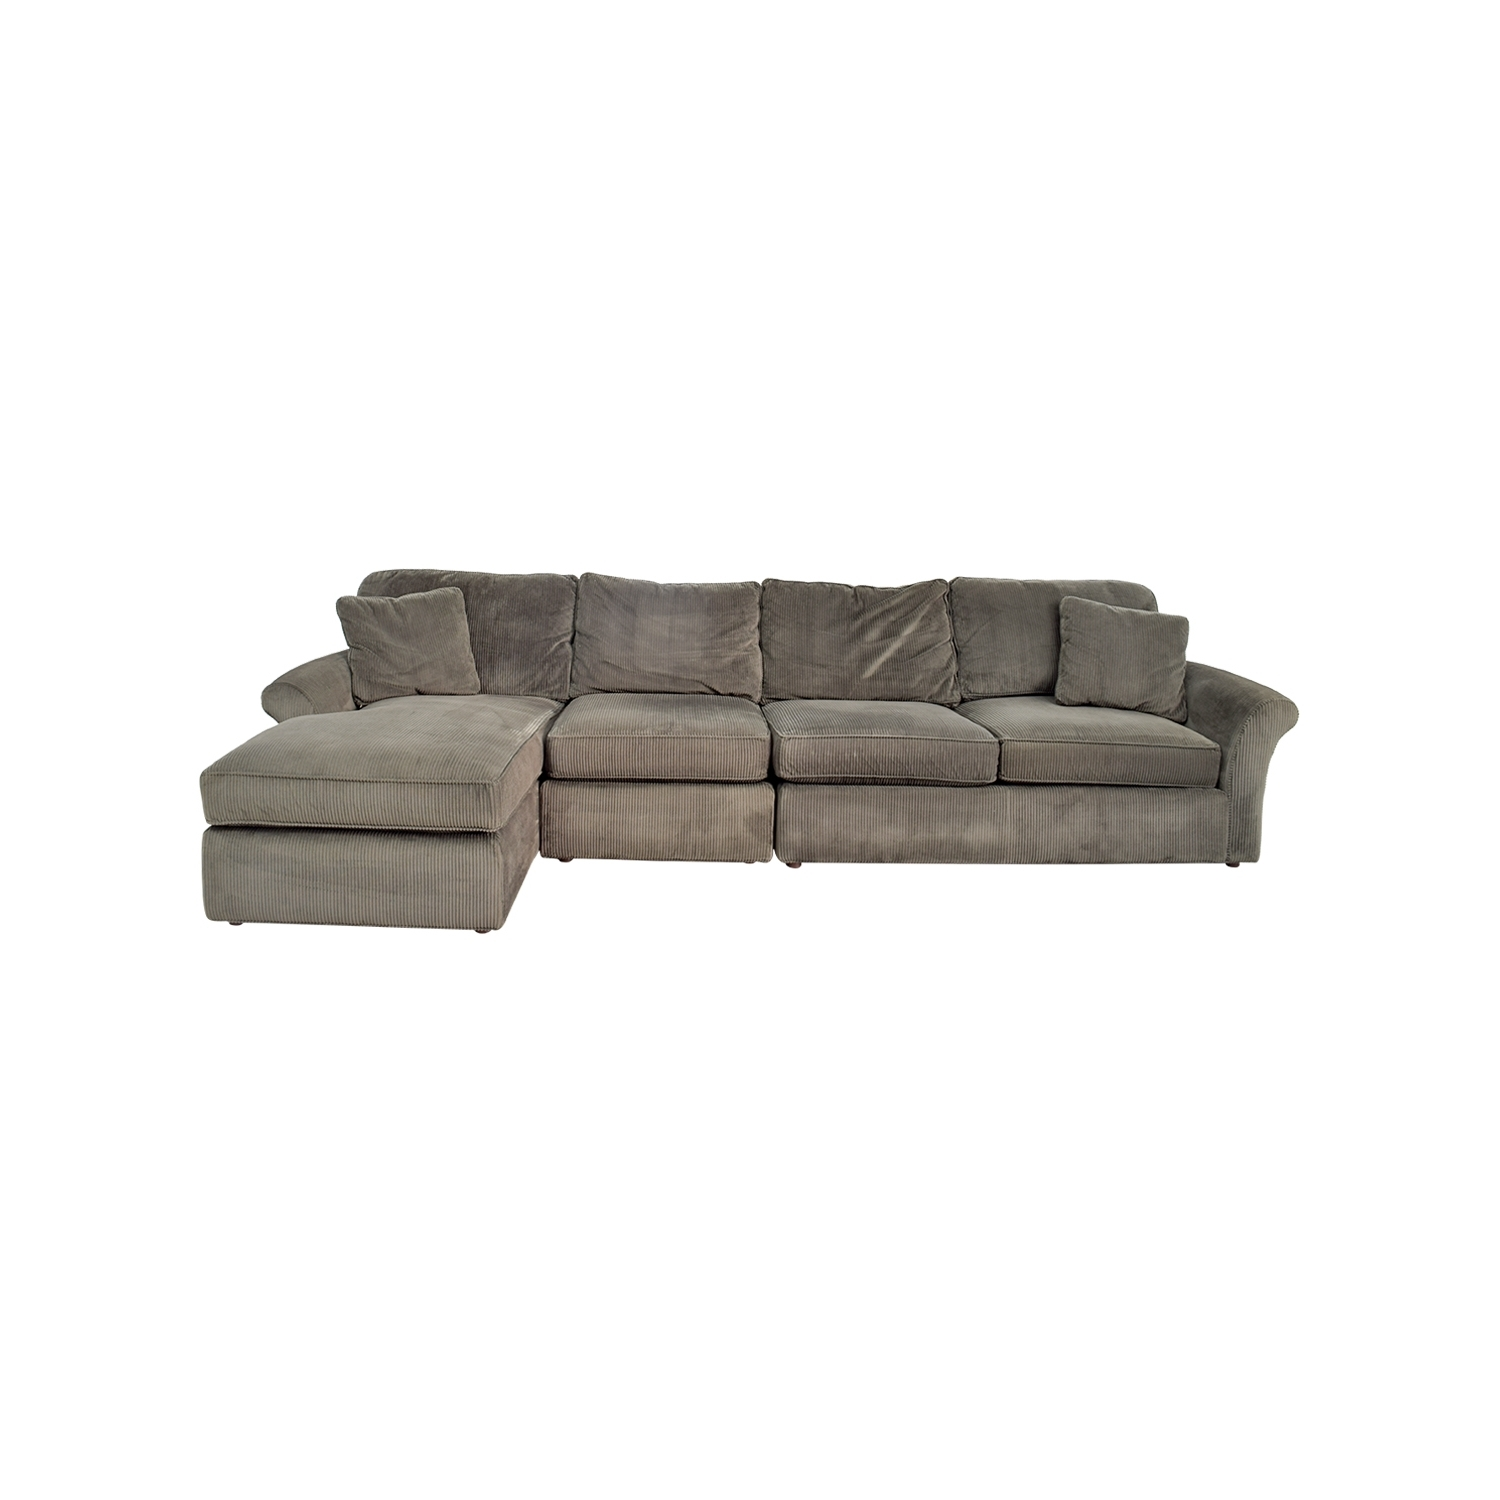 [%74% Off – Macy's Macy's Modern Concepts Charcoal Gray Corduroy Pertaining To Most Popular Modern Chaise Sofas|Modern Chaise Sofas Inside Famous 74% Off – Macy's Macy's Modern Concepts Charcoal Gray Corduroy|Most Up To Date Modern Chaise Sofas Pertaining To 74% Off – Macy's Macy's Modern Concepts Charcoal Gray Corduroy|Fashionable 74% Off – Macy's Macy's Modern Concepts Charcoal Gray Corduroy With Regard To Modern Chaise Sofas%] (View 8 of 15)